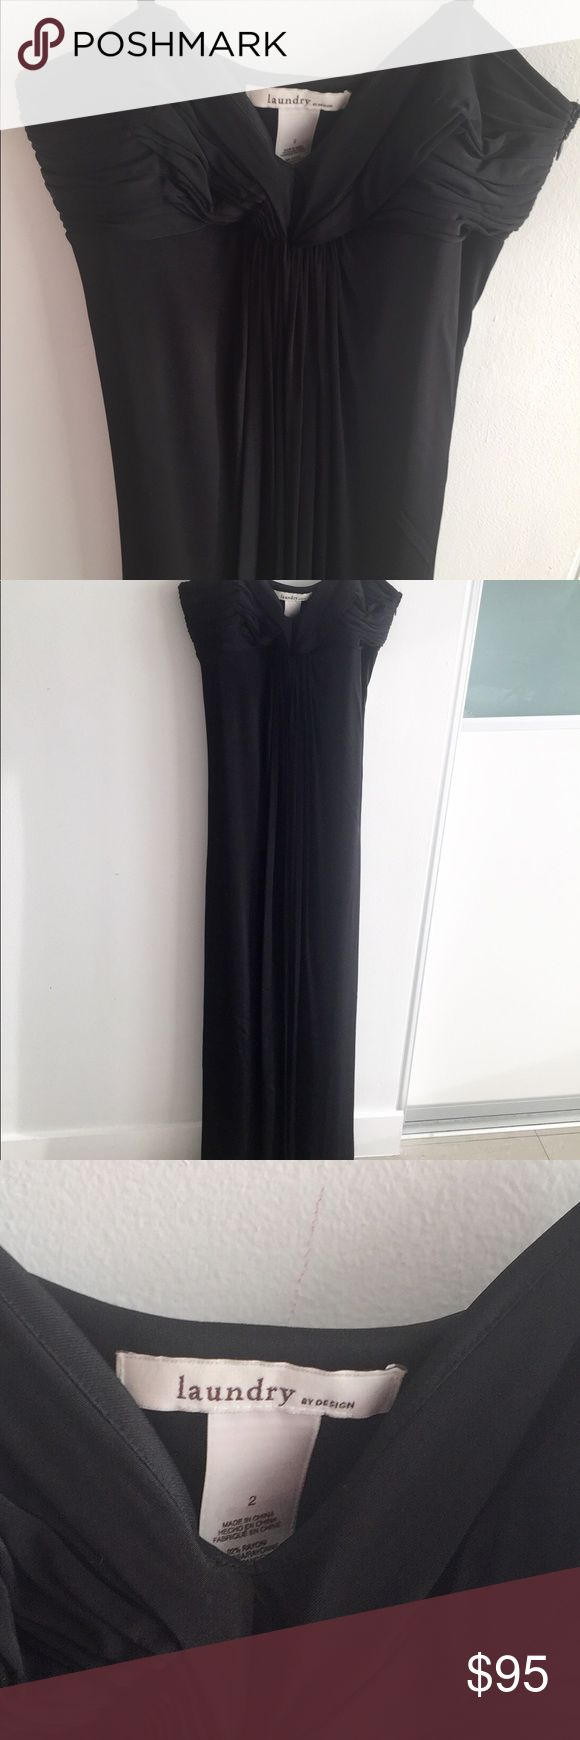 Black, strapless, long, formal Laundry dress 🌚🌟 A classic, simple yet elegant. Worn twice, almost as good as new. Large size 2. Since it's very roomy can fit up to a large 4. Jersey, stretchy, comfortable and as versatile as you wish. Hair, makeup and jewelry can transform this pretty dress from cocktail to gala. ✨✨✨ Laundry by Design Dresses Maxi